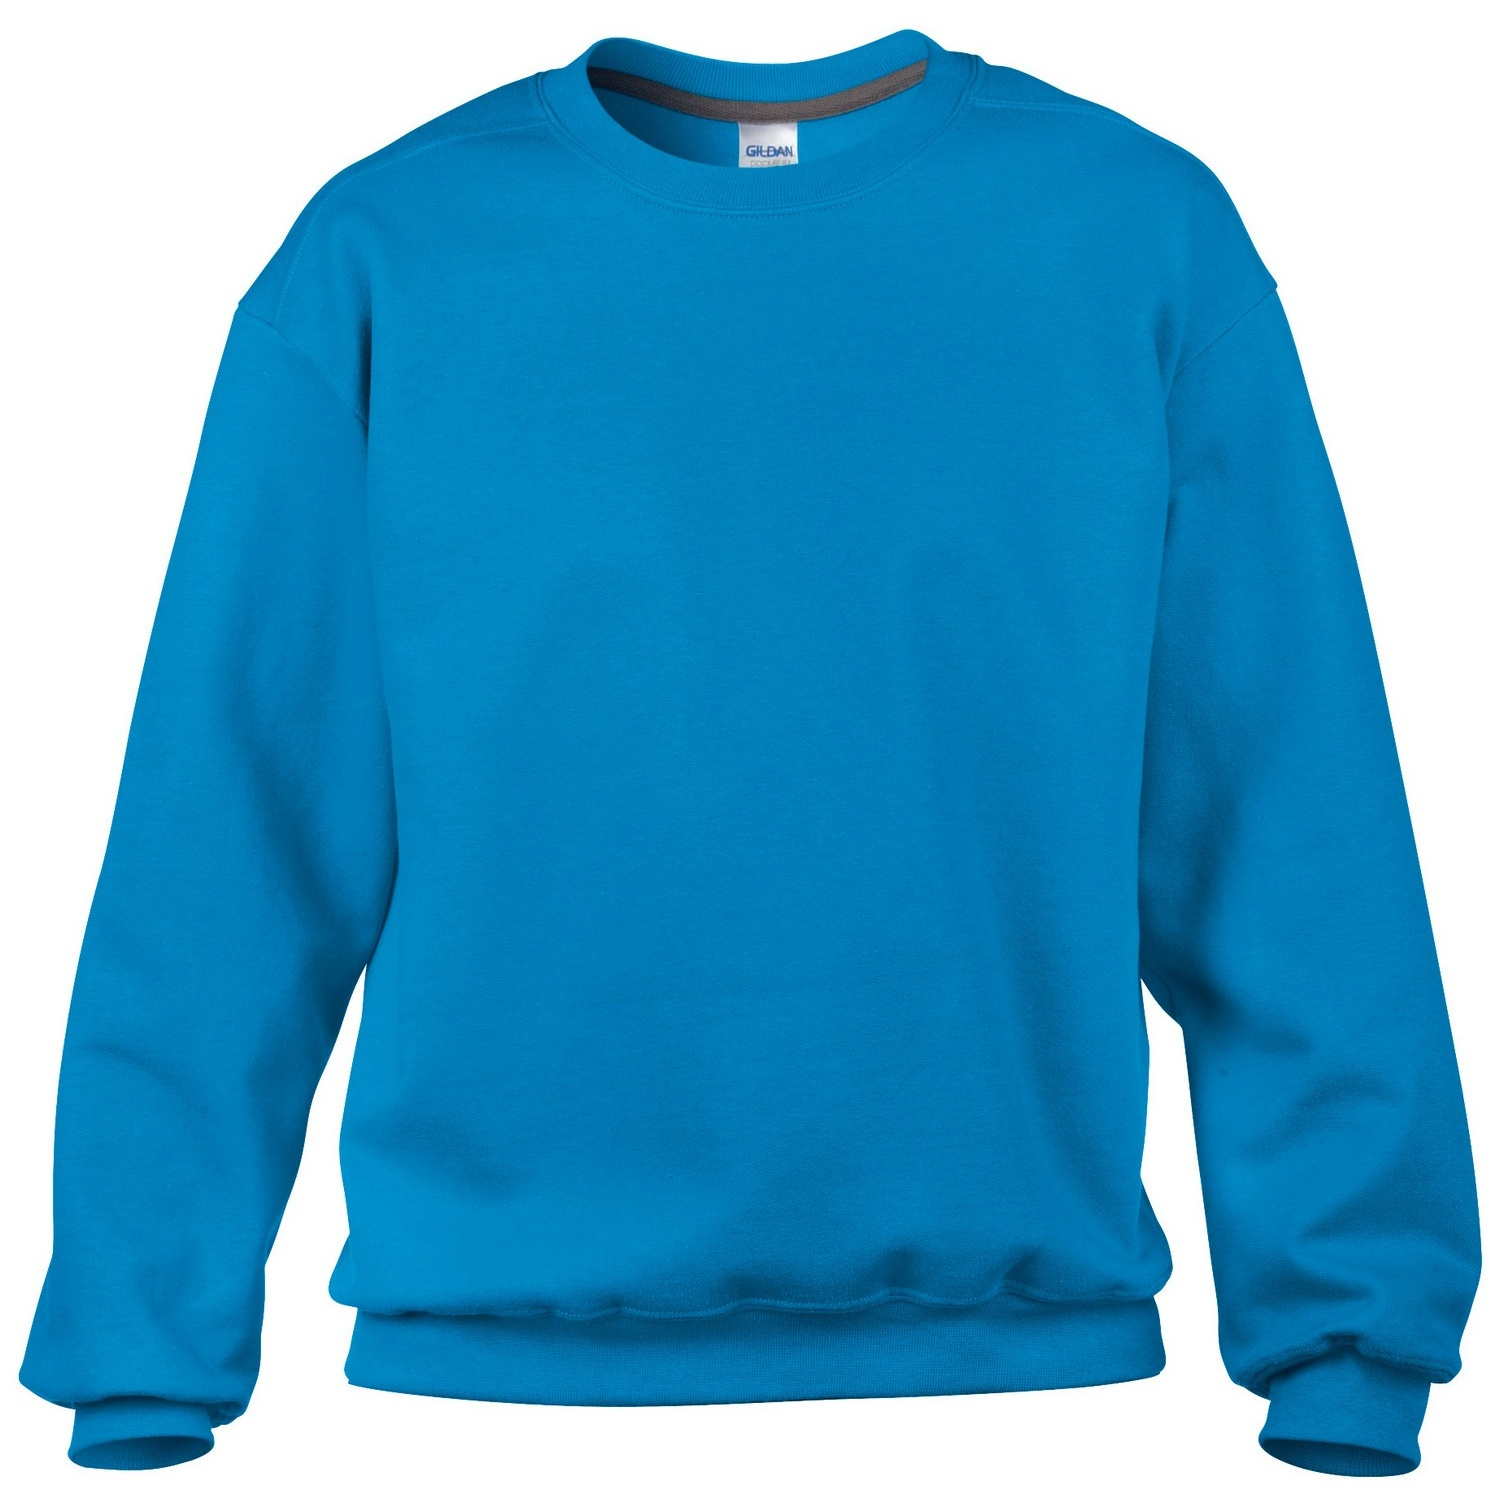 Shop the Latest Collection of Men's Crew Neck Hoodies & Sweatshirts in a variety of Styles & Colors at nakedprogrammzce.cf & look sharp where ever you go. FREE SHIPPING AVAILABLE!